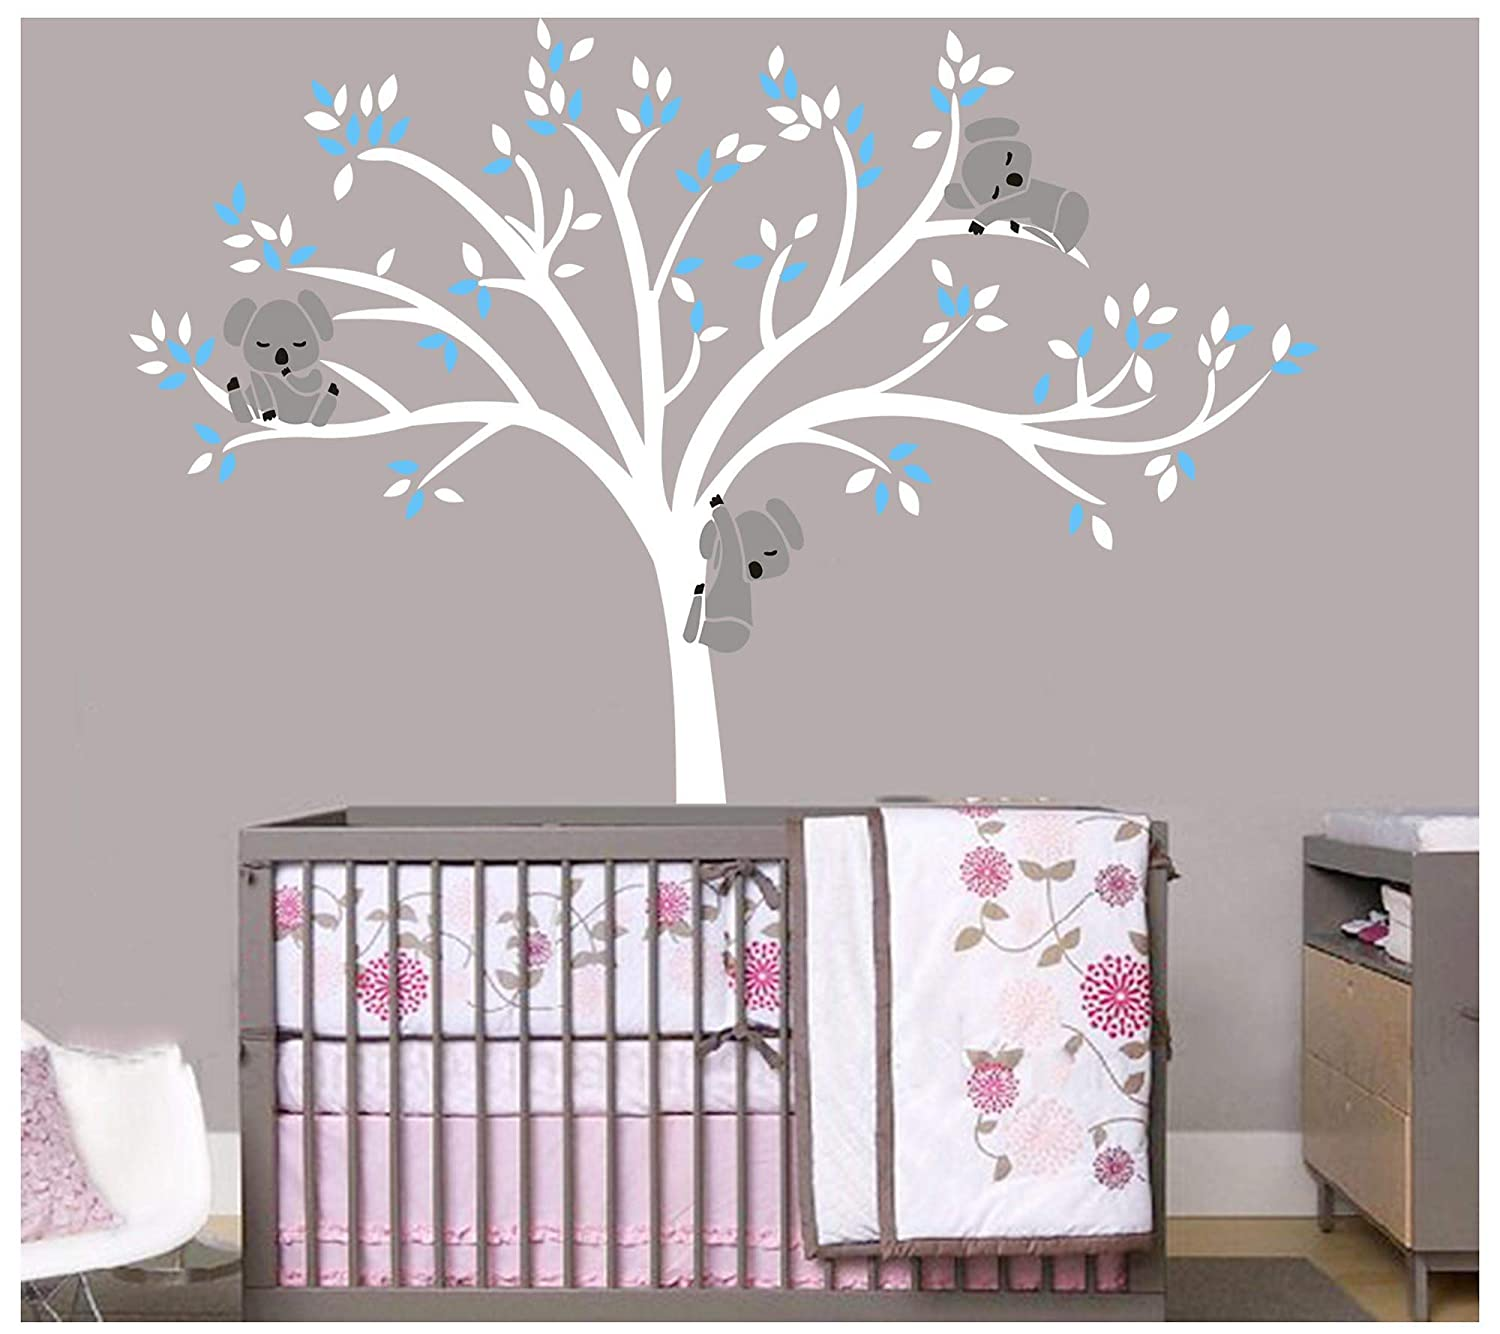 Wandsticker f/ür Kinderzimmer Pink bdecoll 3/ Koalas Tree Branches Wall Decal Wall Sticker Baby Nursery Decor Kids Room//Vinyl Wandtattoo